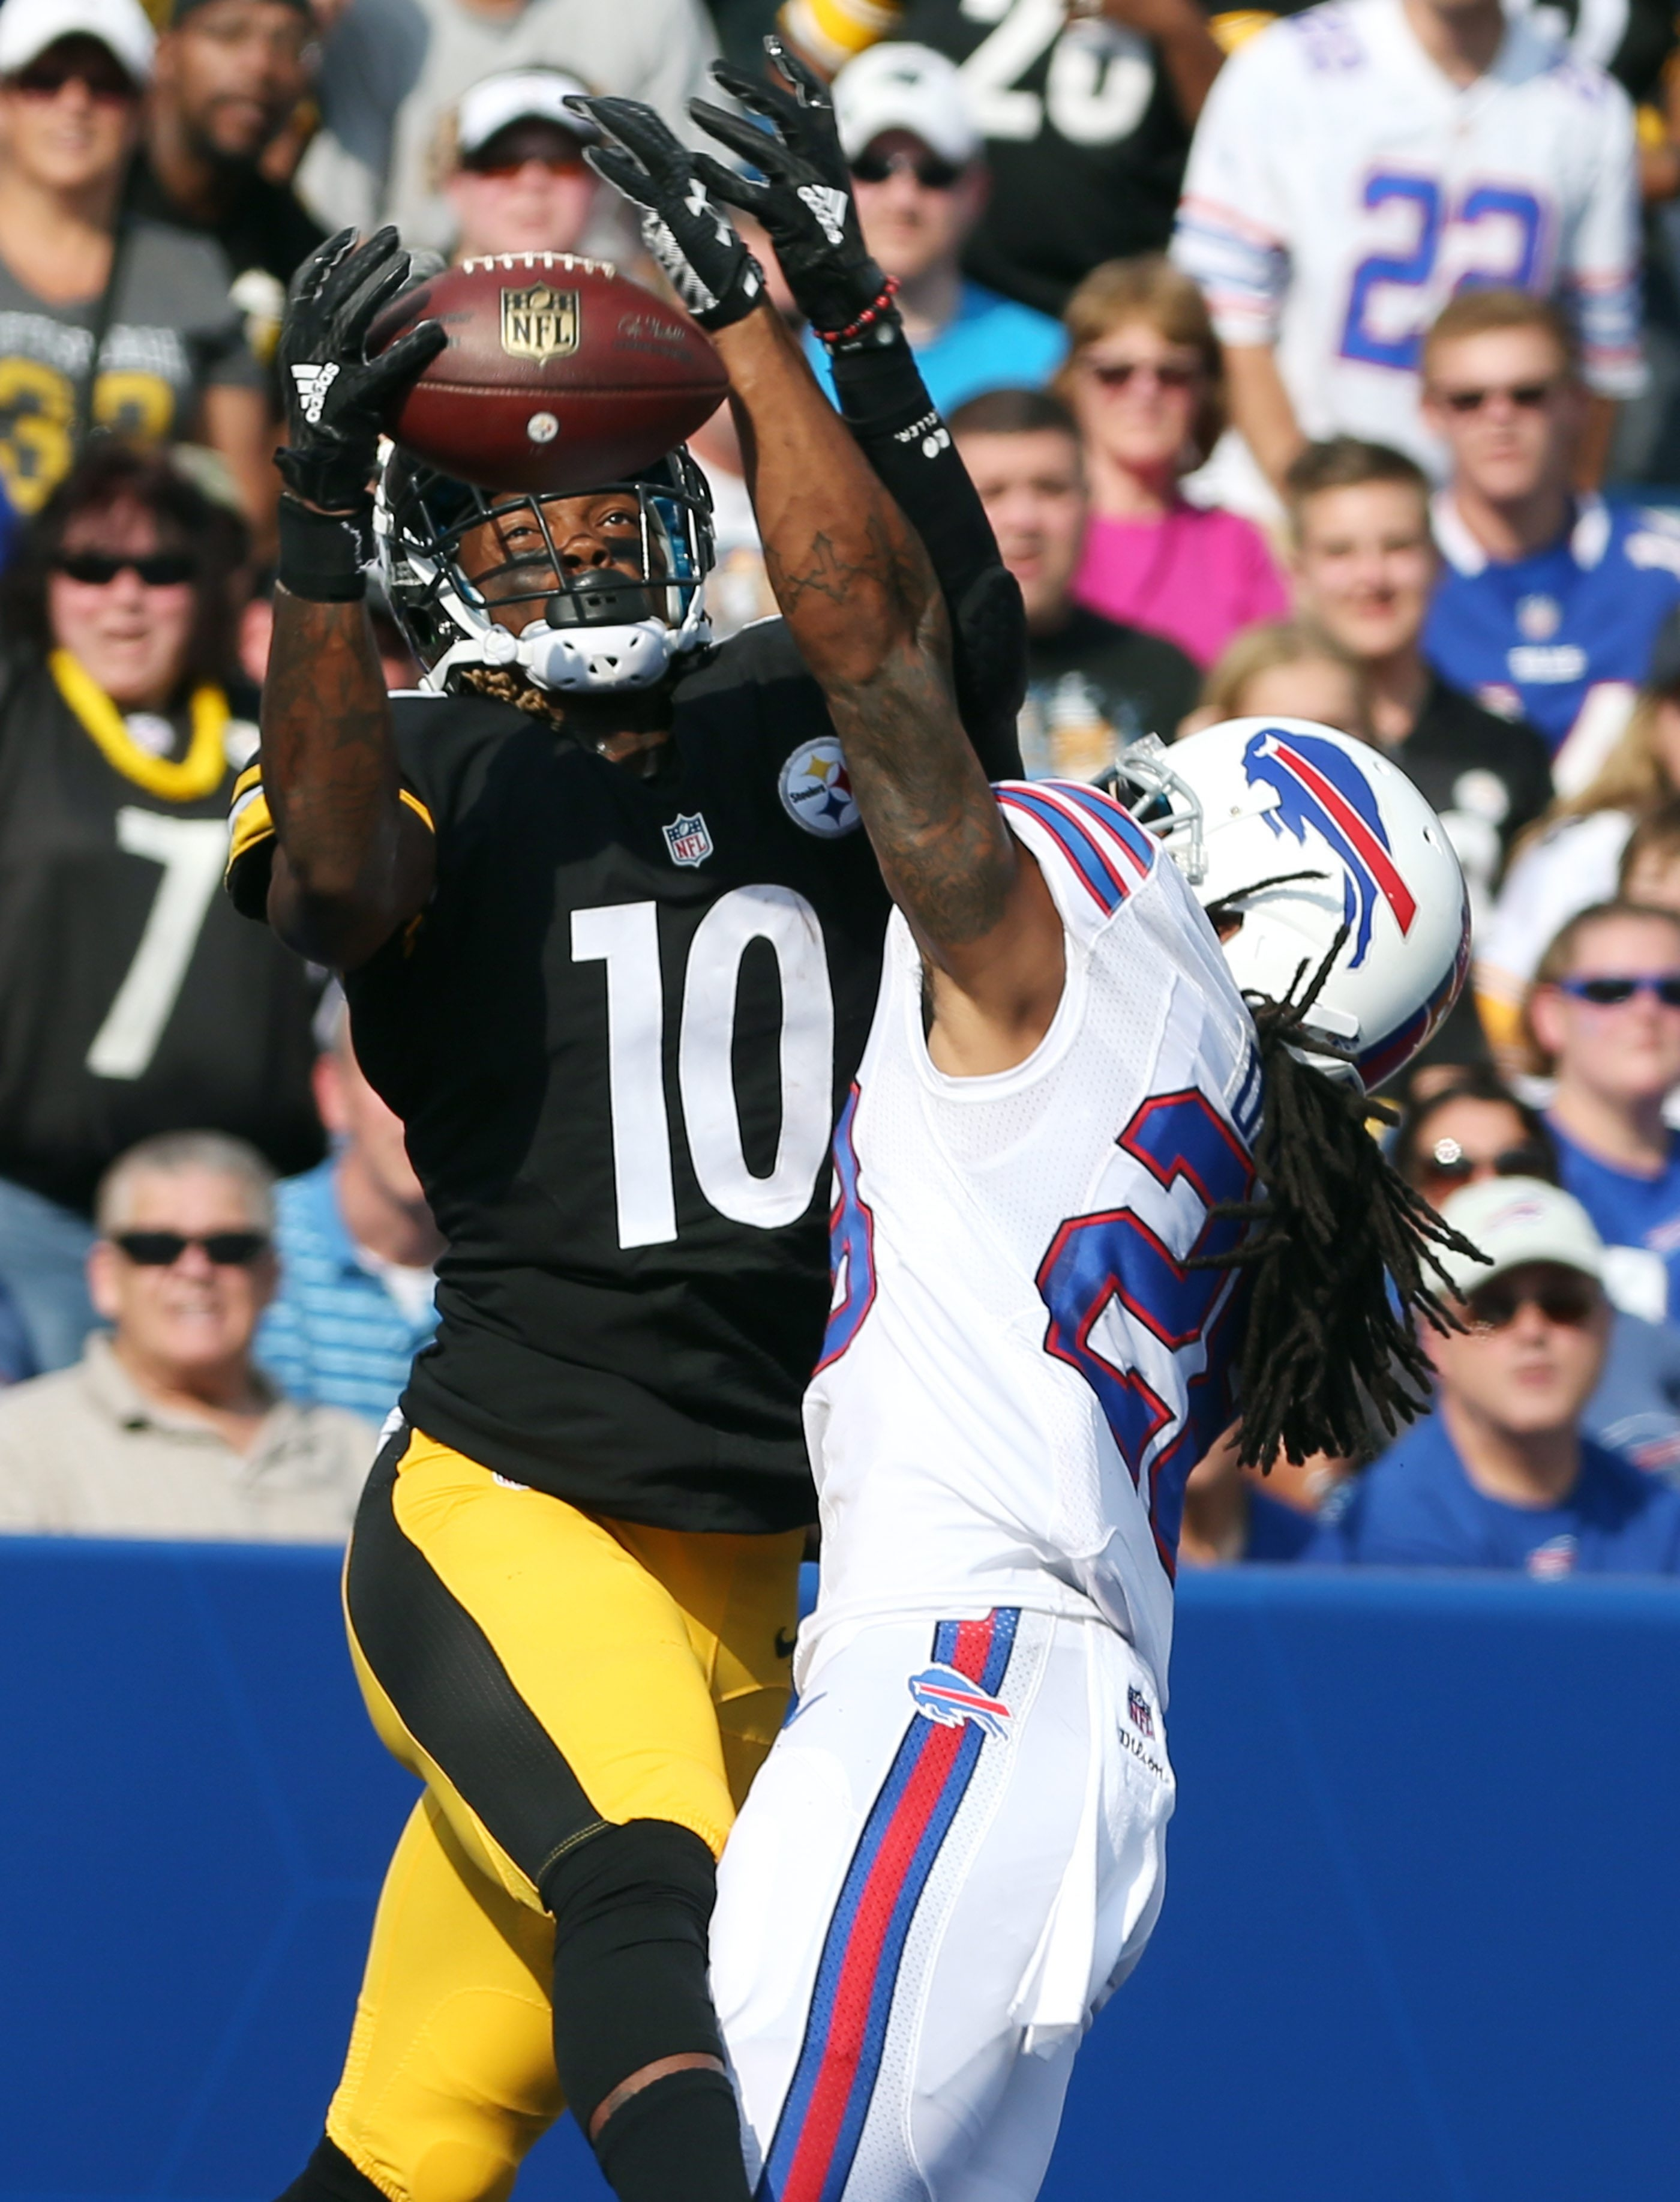 Bills cornerback Ronald Darby gets flagged for pass interference in the third preseason game against the Steelers, a game he struggled in.